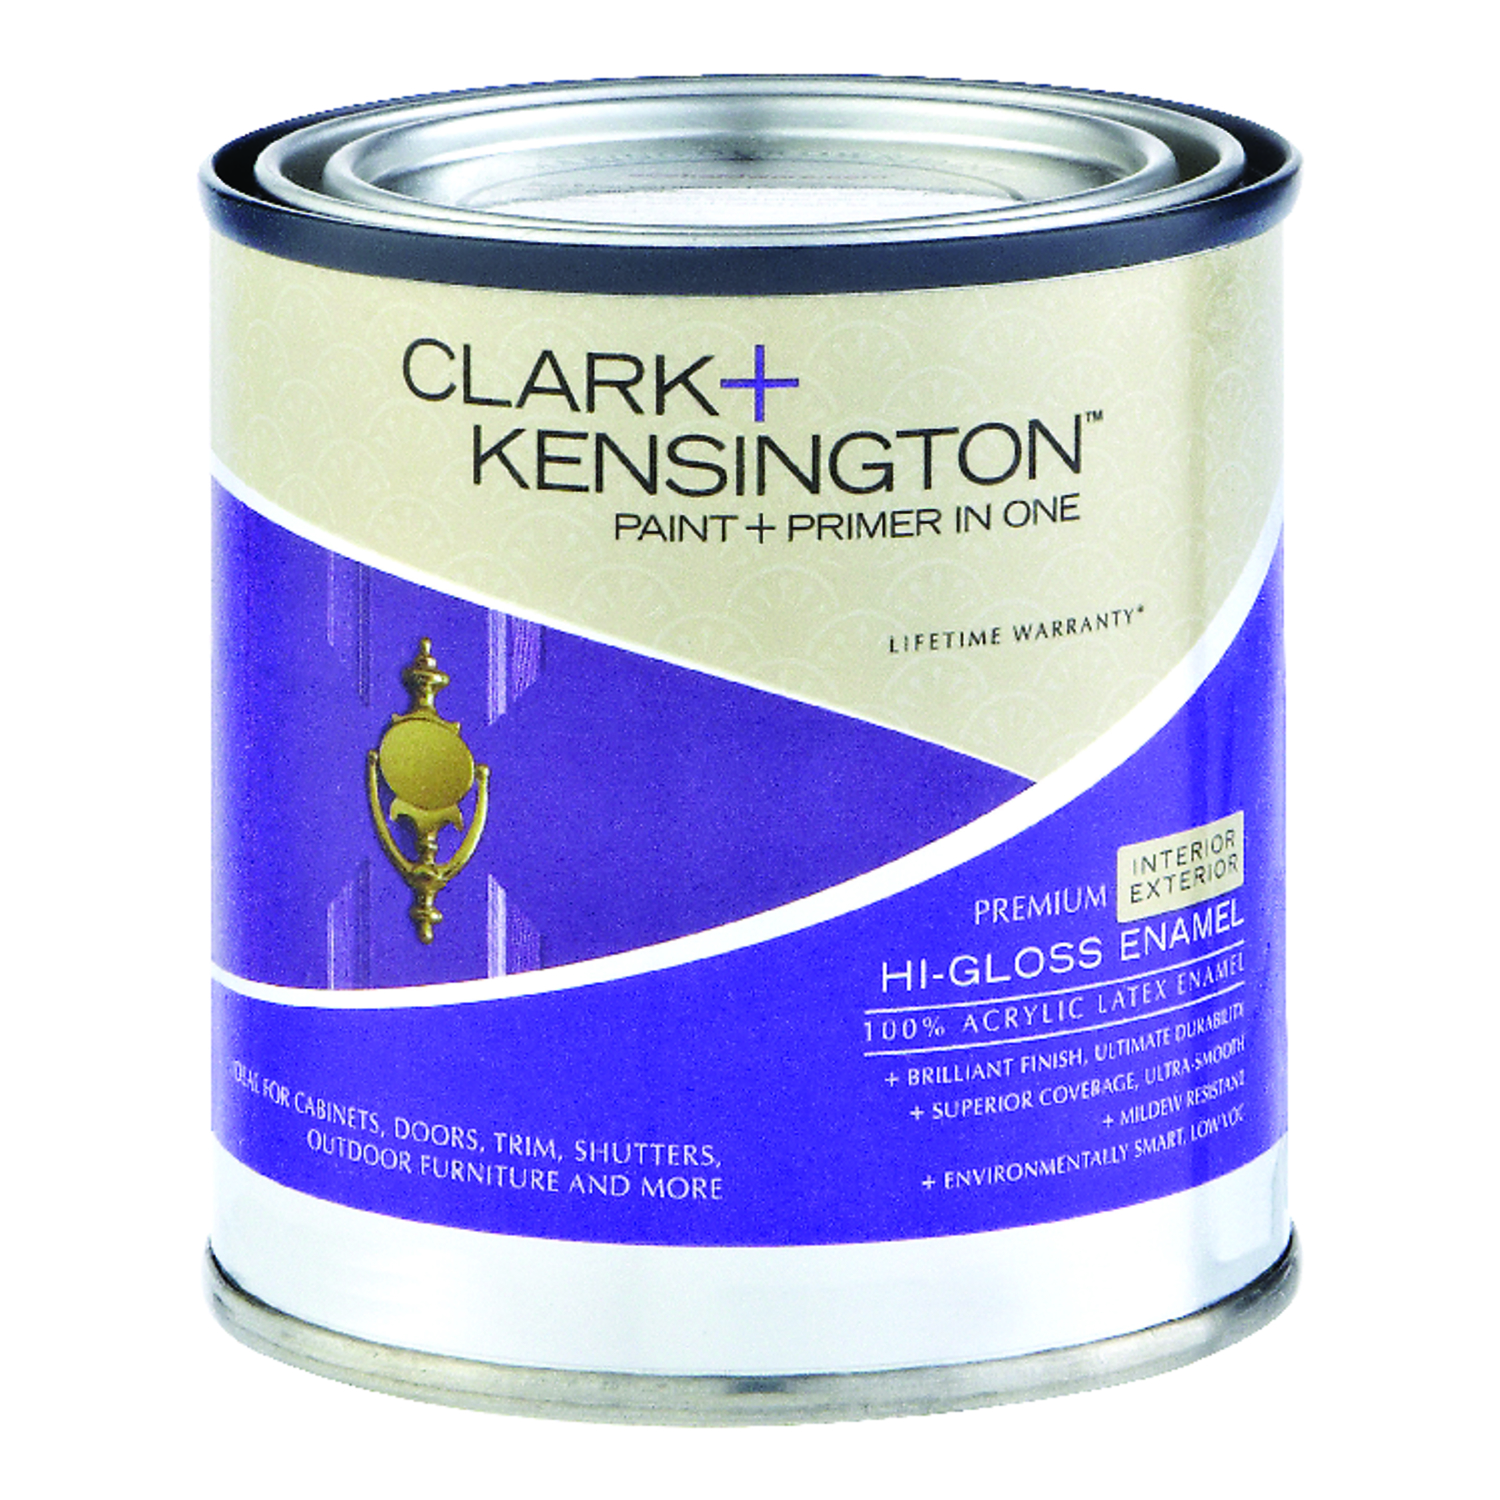 Clark+Kensington  Designer White  High-Gloss  1/2 pt. Paint and Primer